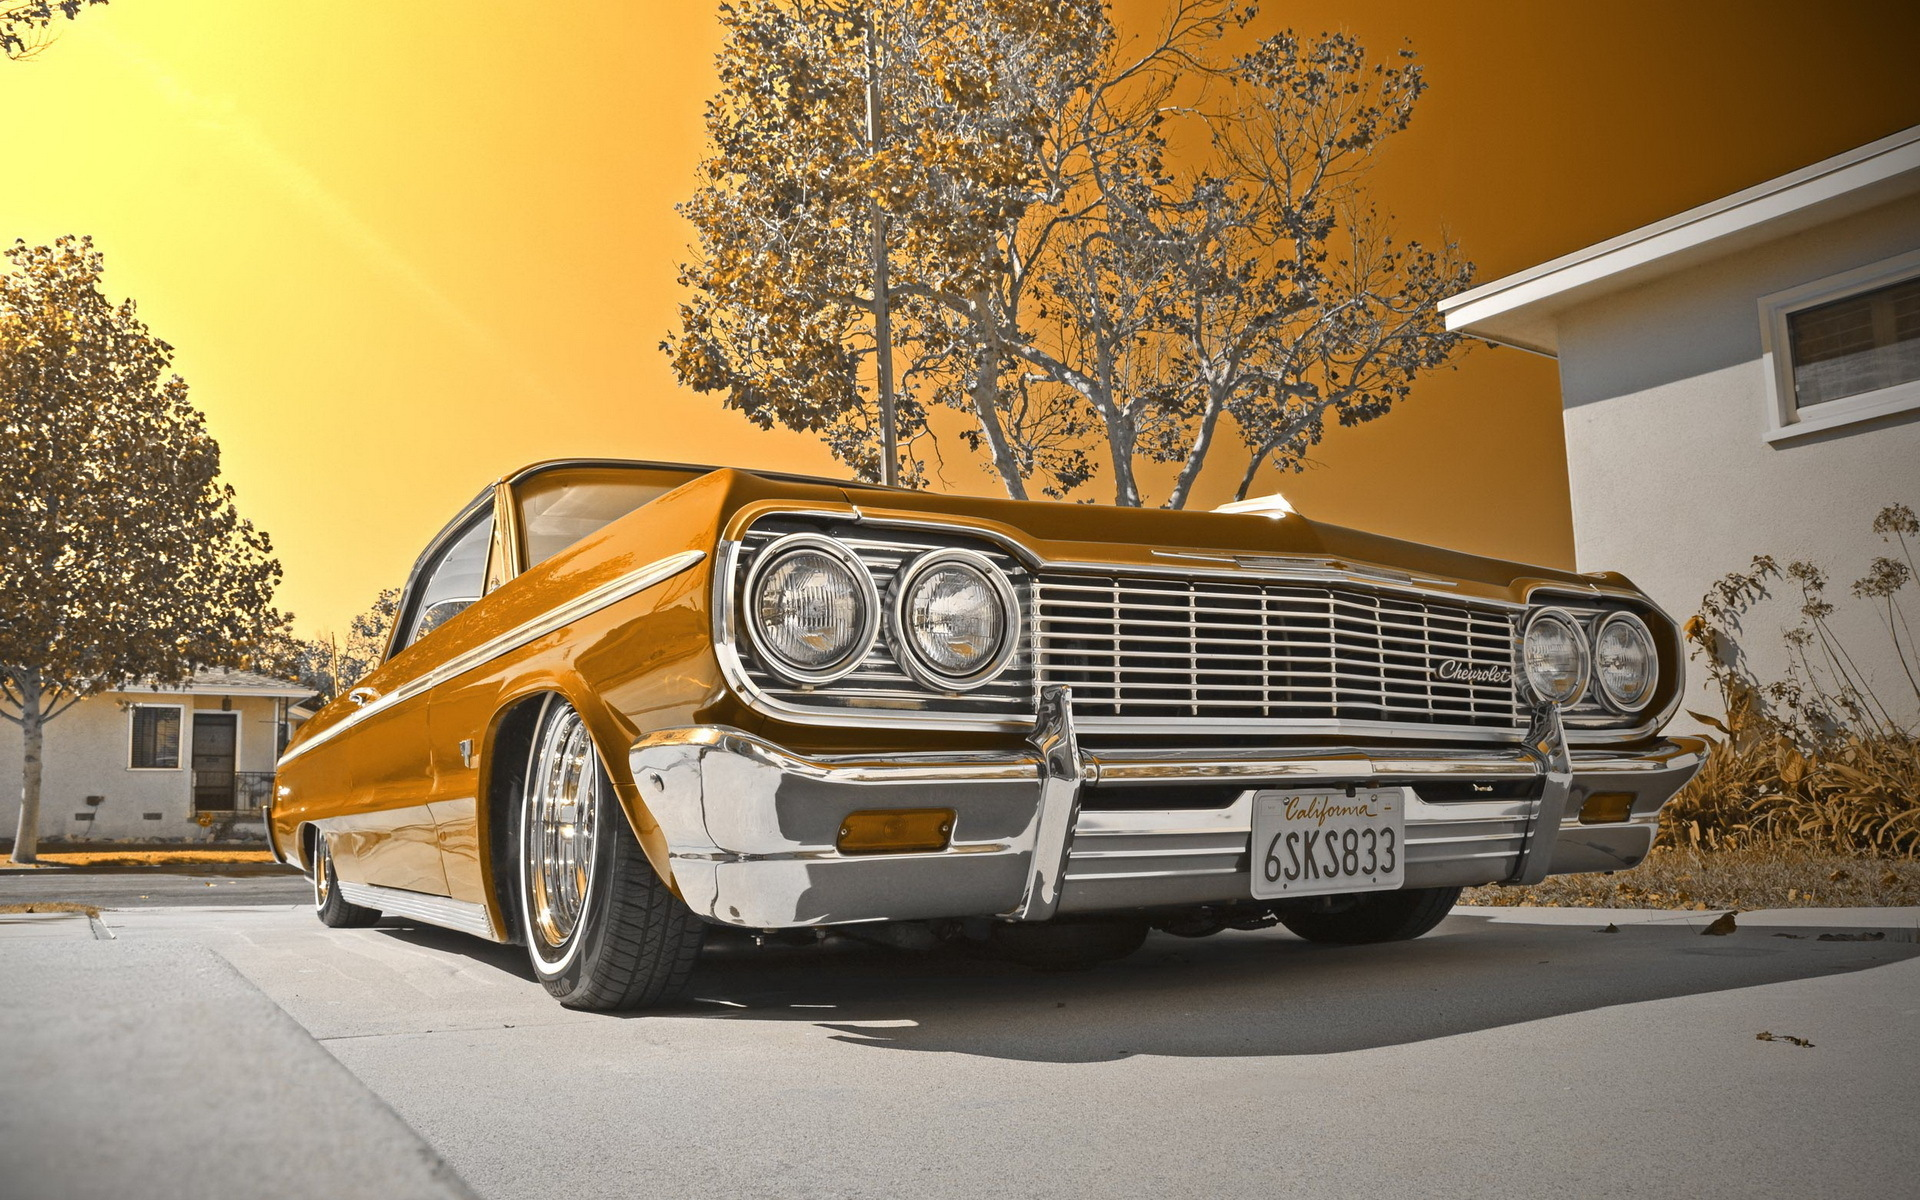 Who else misses lowriders?